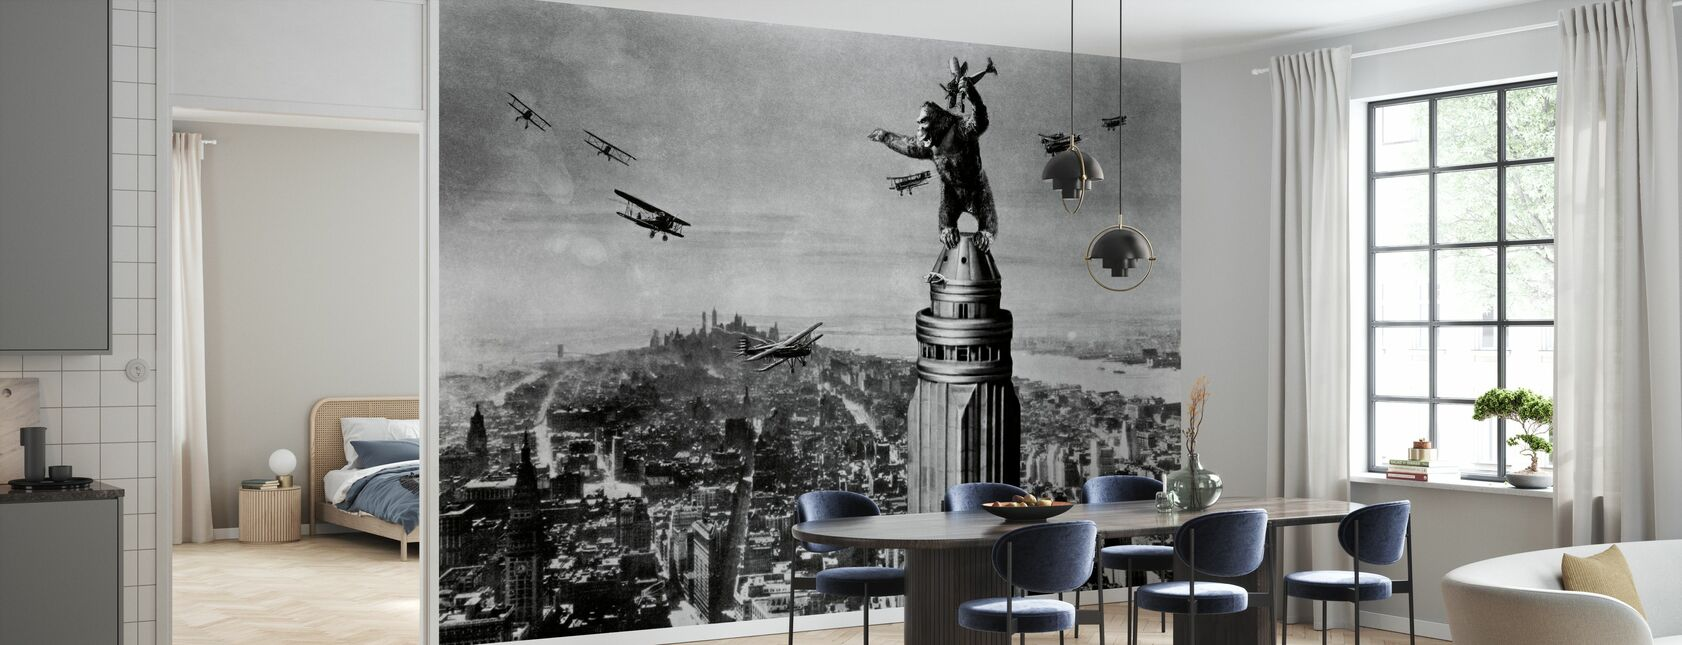 King Kong - Wallpaper - Kitchen